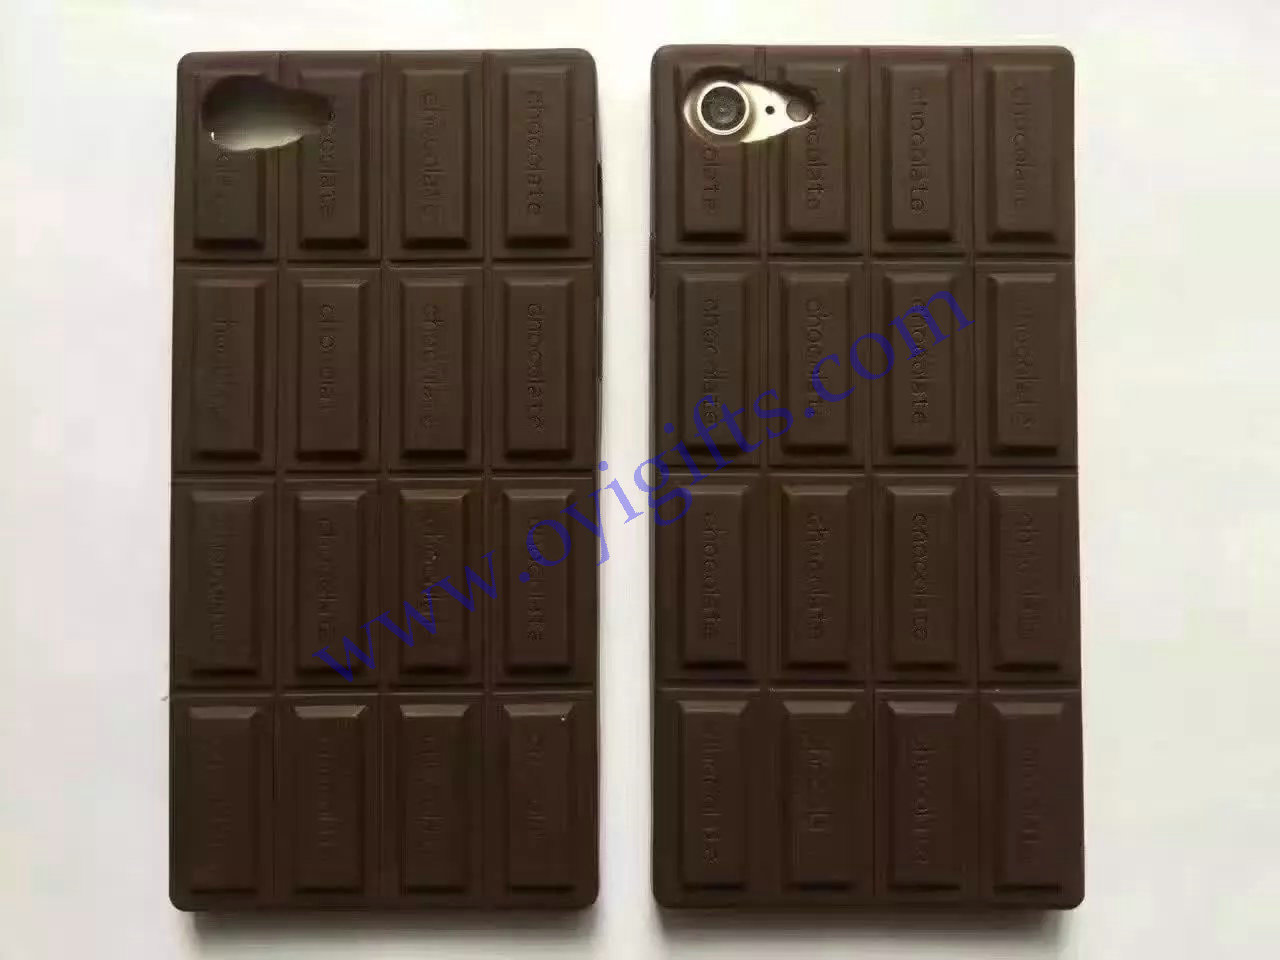 Love Chocolate Silicon phone covers case soft skin